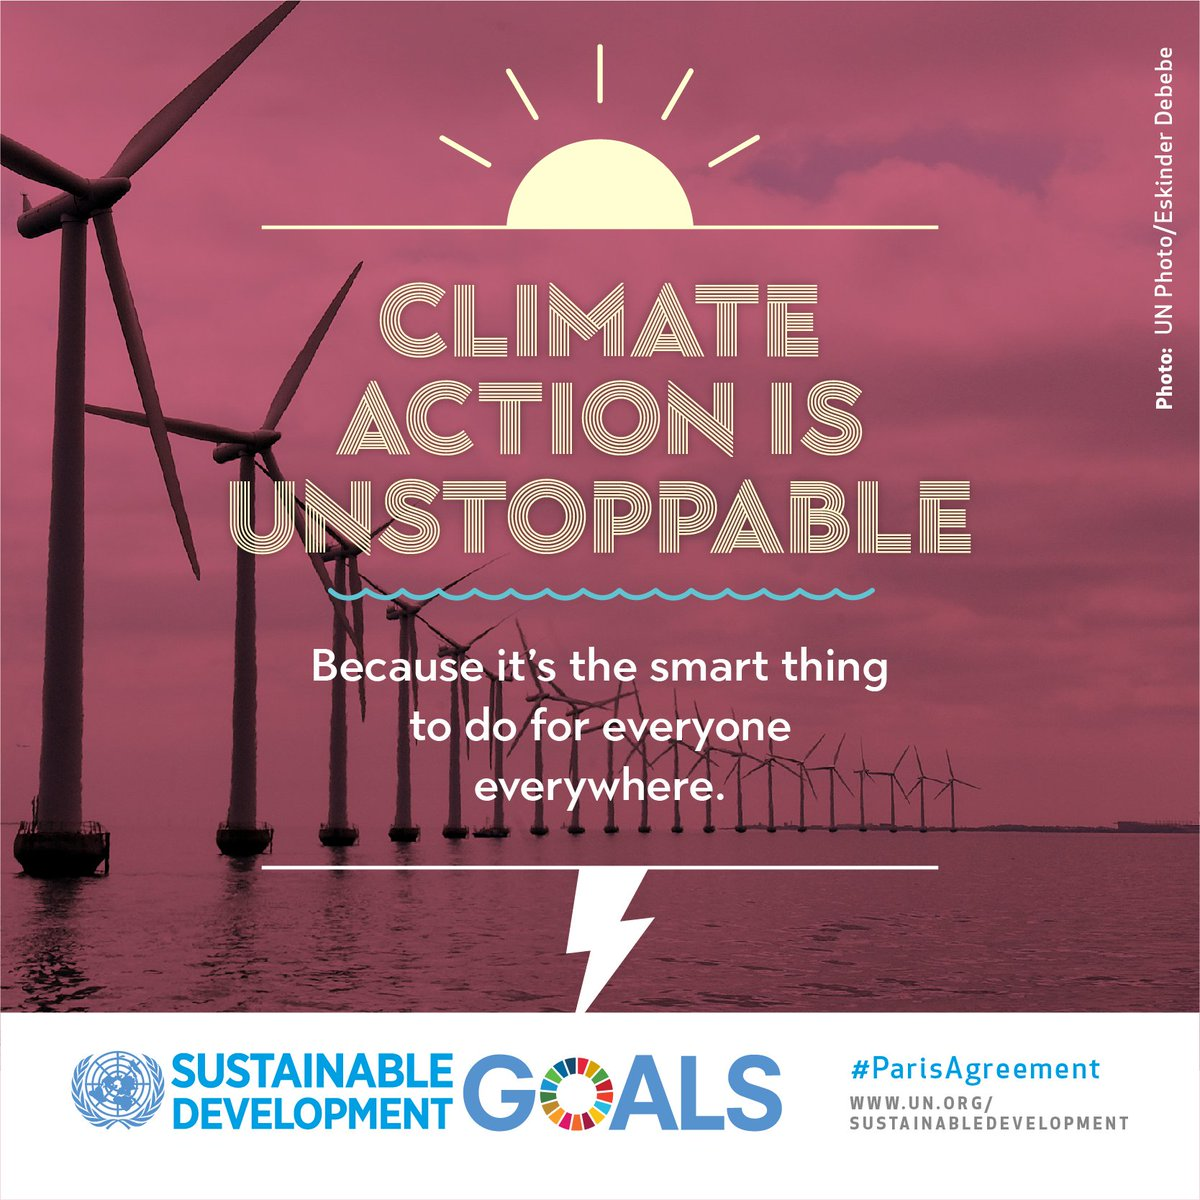 Climate change is real & its happening now. But taking urgent climate action will create jobs, improve our health & save money. Heres what you can do: j.mp/1BvpjPo #GlobalGoals